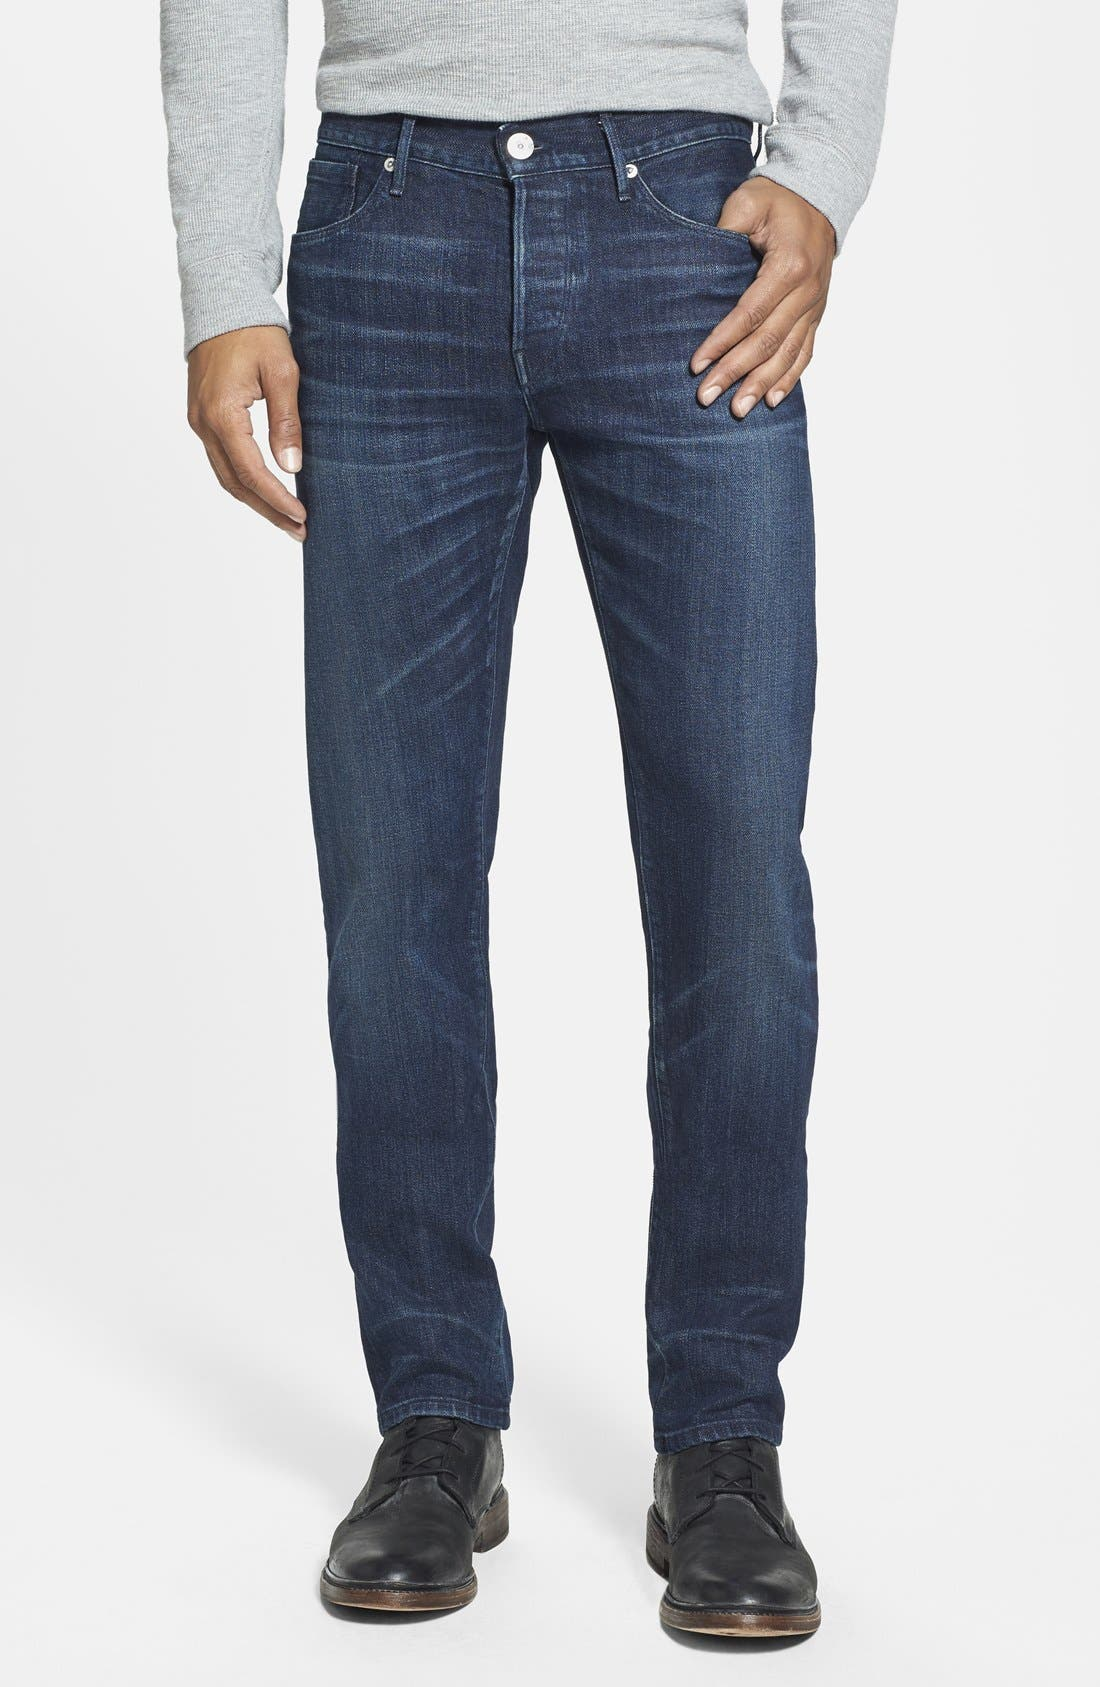 Main Image - 3x1 NYC 'M3' Slim Fit Selvedge Jeans (Woodlands)